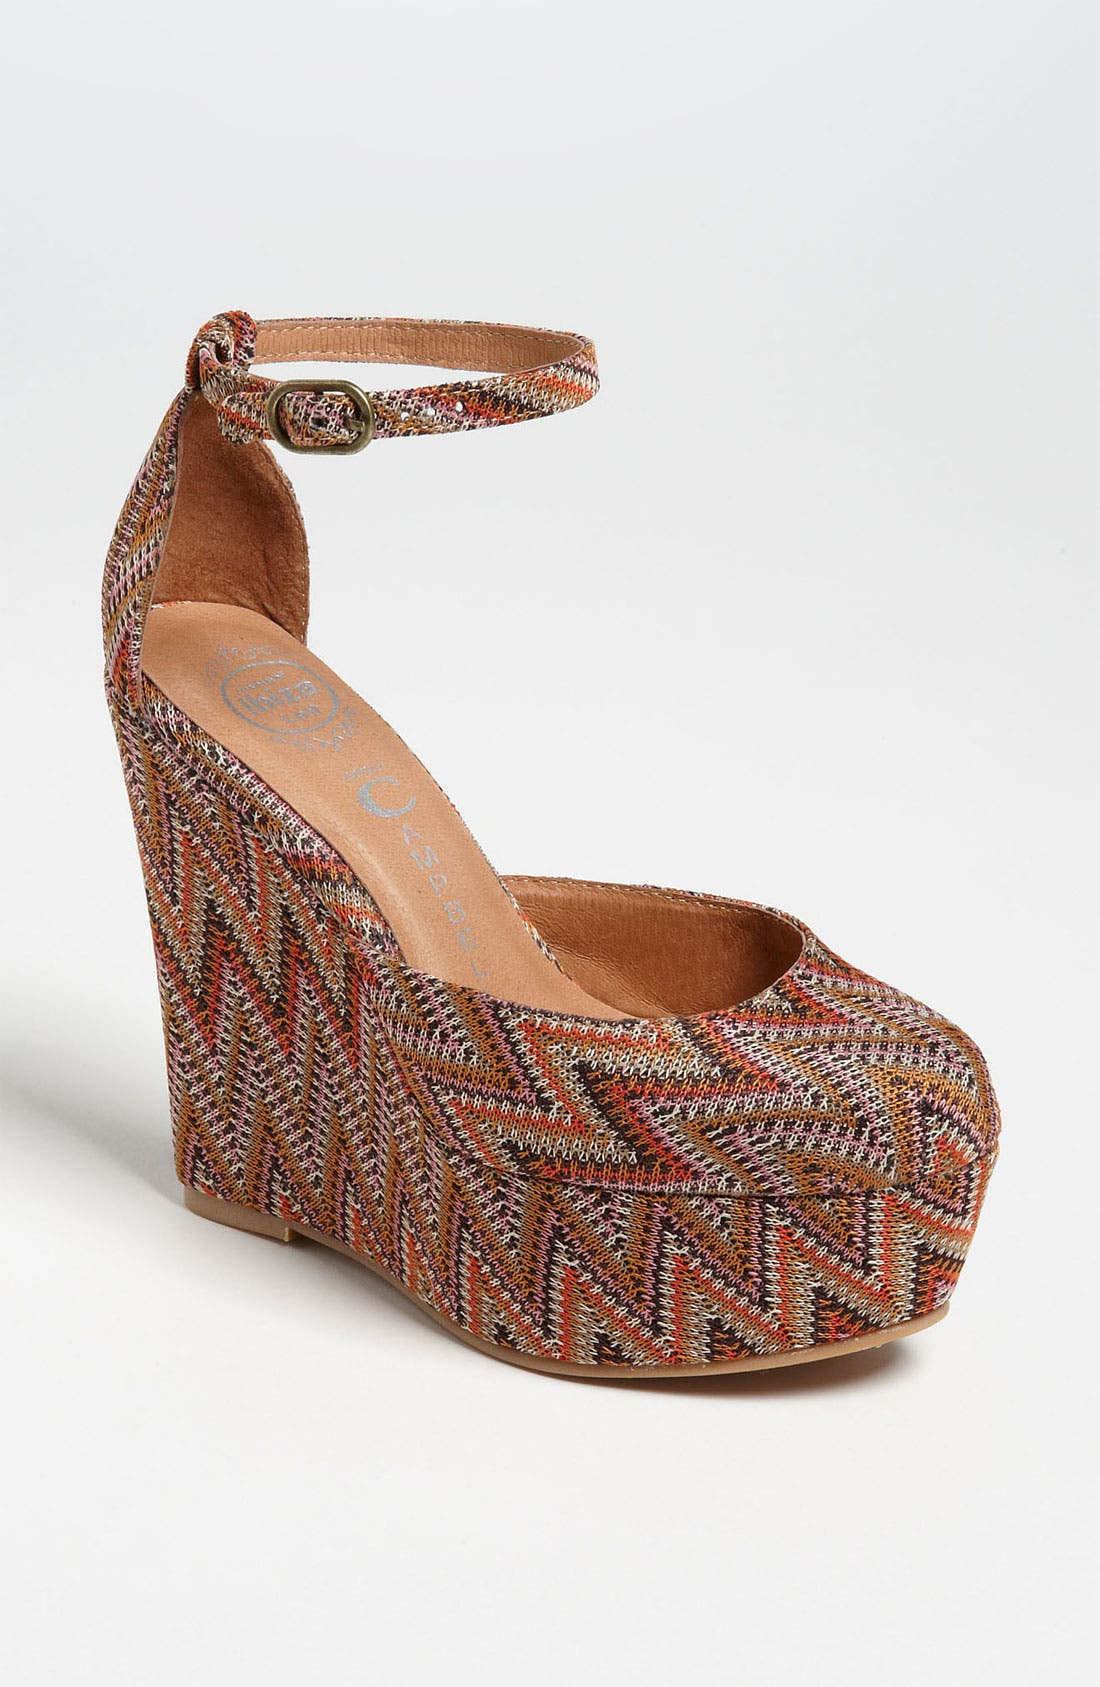 Alternate Image 1 Selected - Jeffrey Campbell 'Bette' Wedge